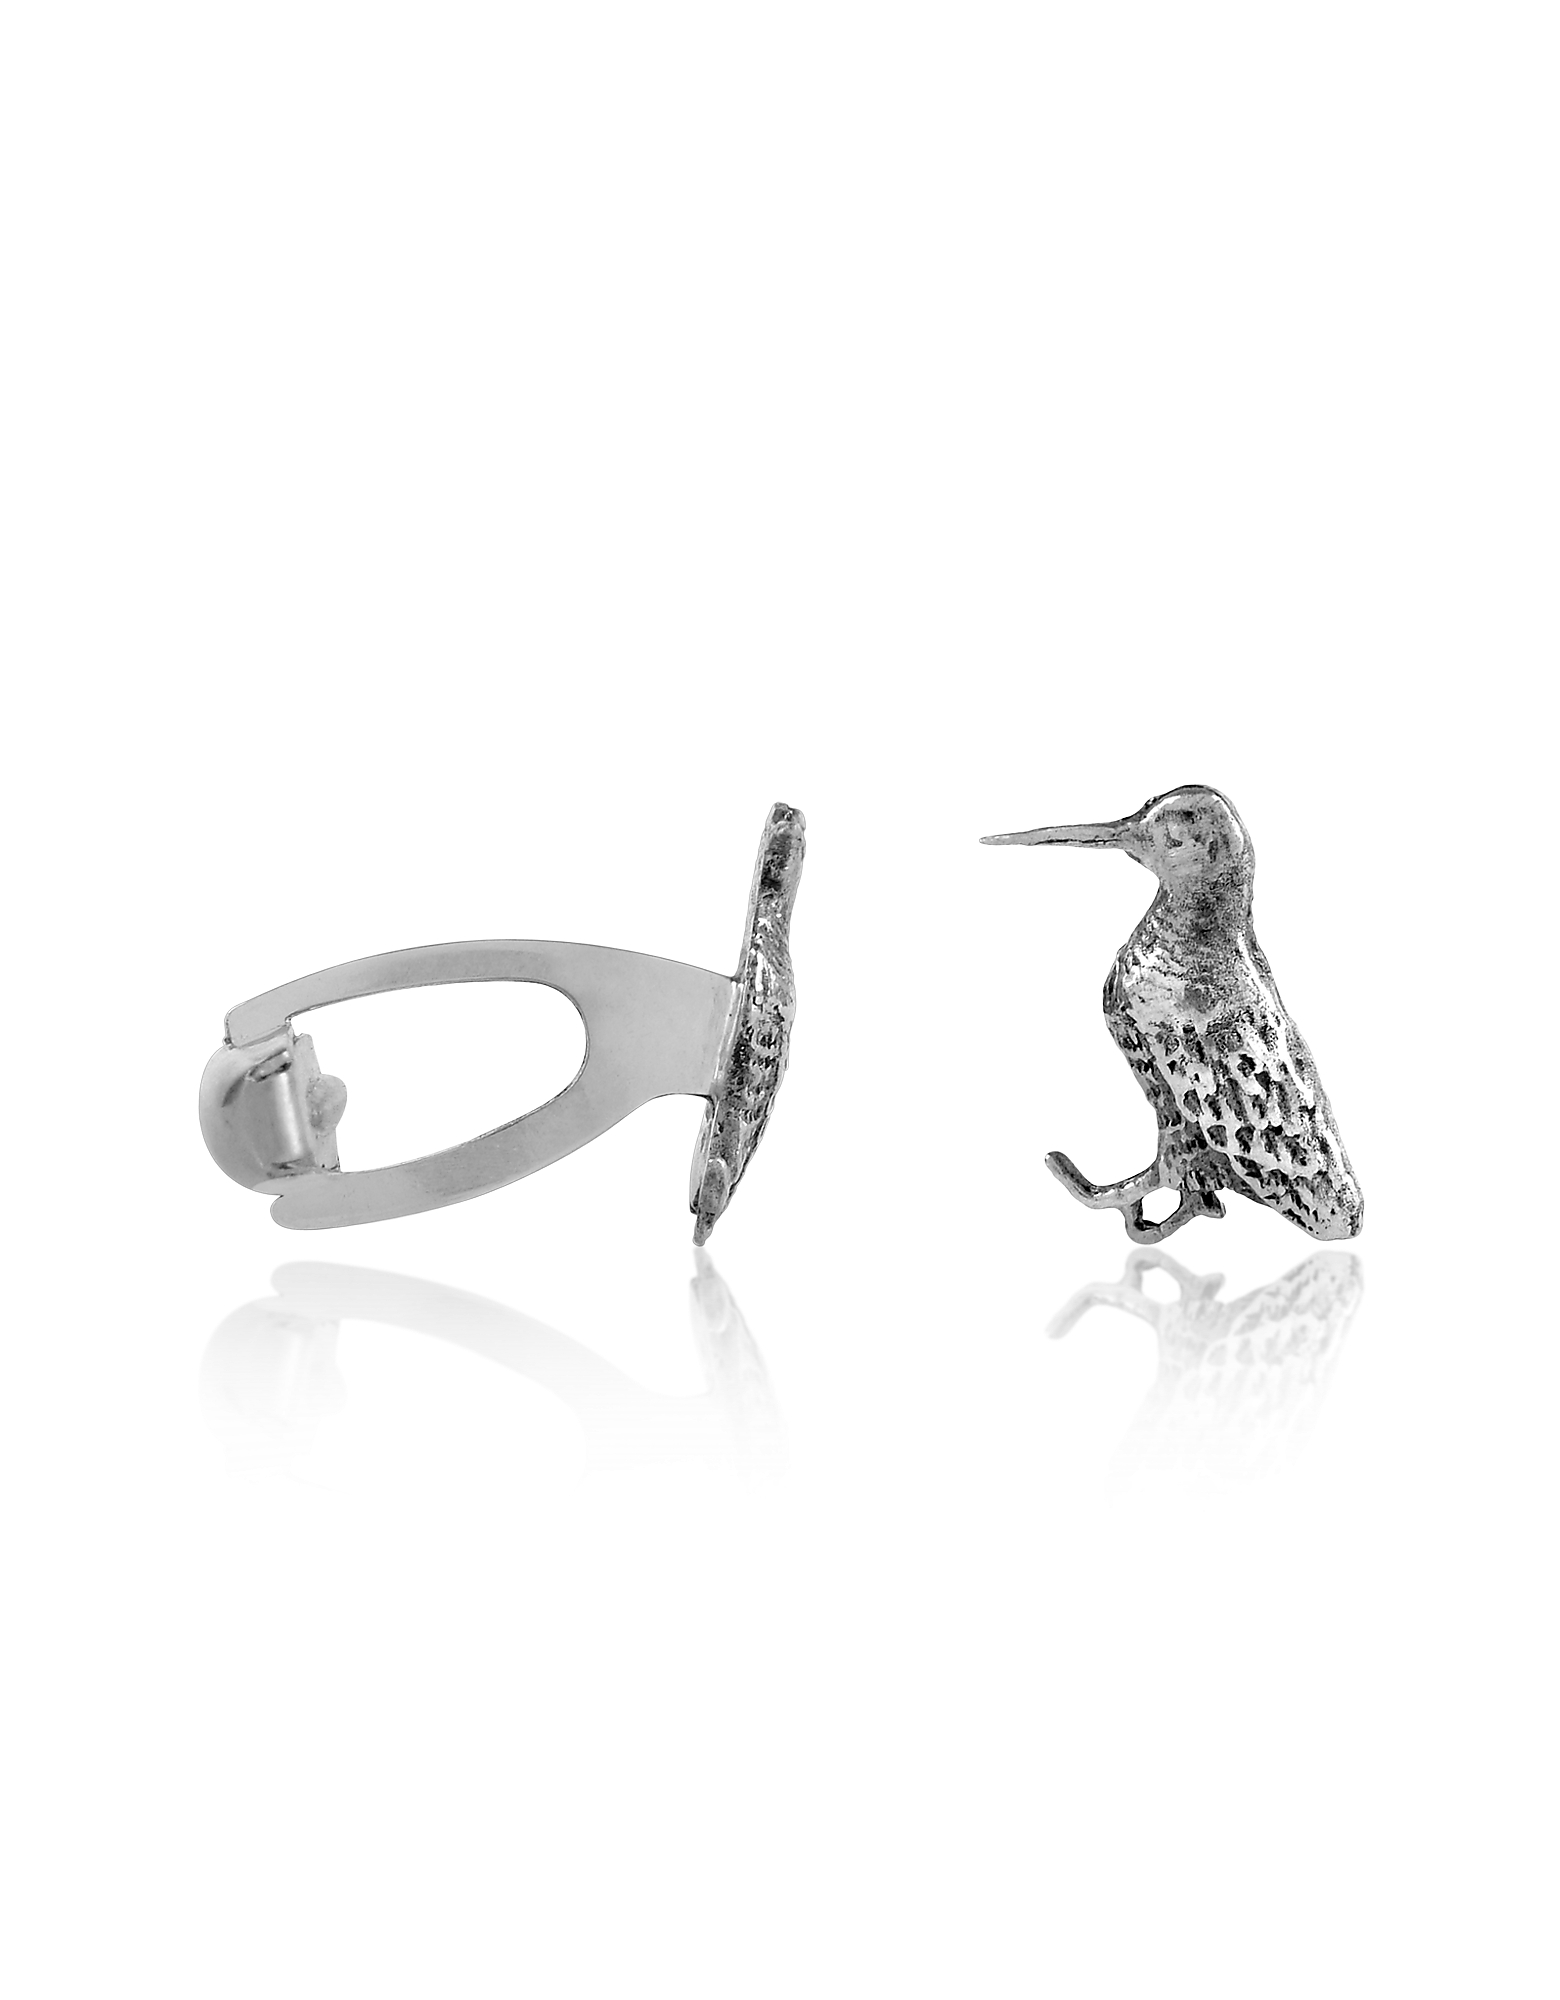 Forzieri Exclusives Cufflinks, Sterling Silver Woocock Cufflinks